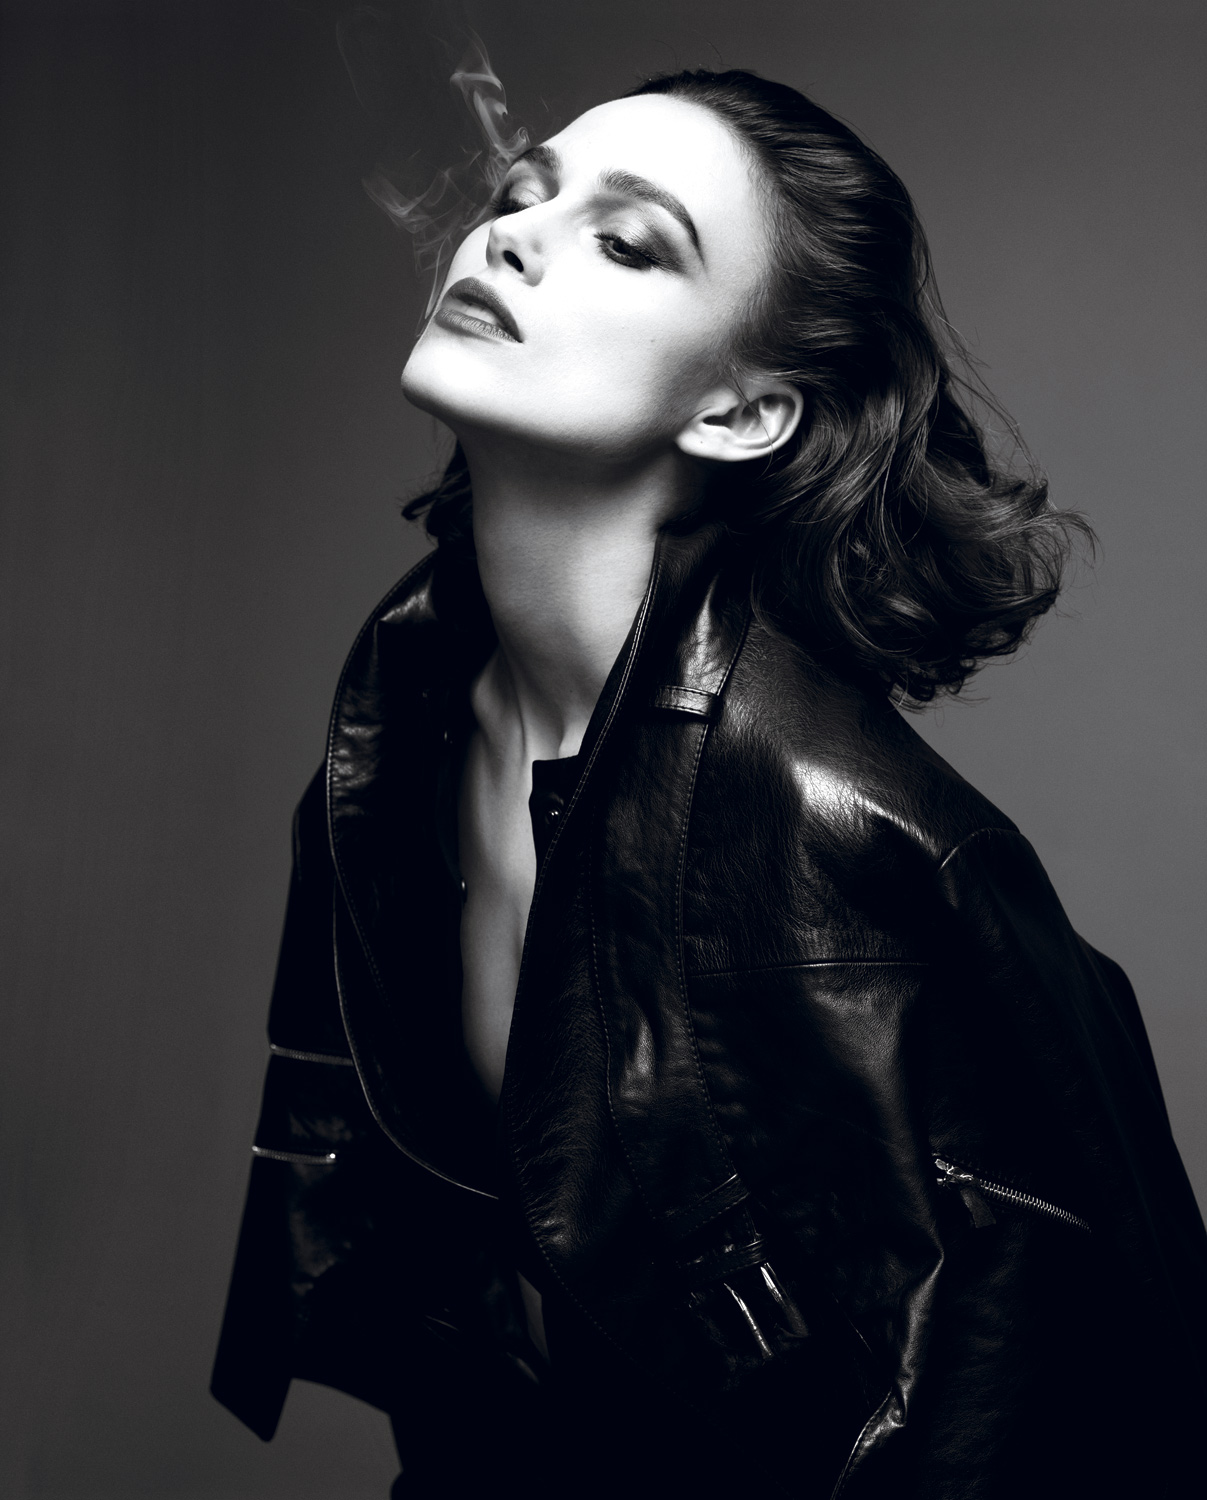 http://2.bp.blogspot.com/-G6evy8z5ItA/T3uX1NDCzGI/AAAAAAAAcho/D5kYn_fTHcM/s1600/Intervew-April-2012-Keira-Knightley-photographed-by-Mert-and-Marcus03.jpg